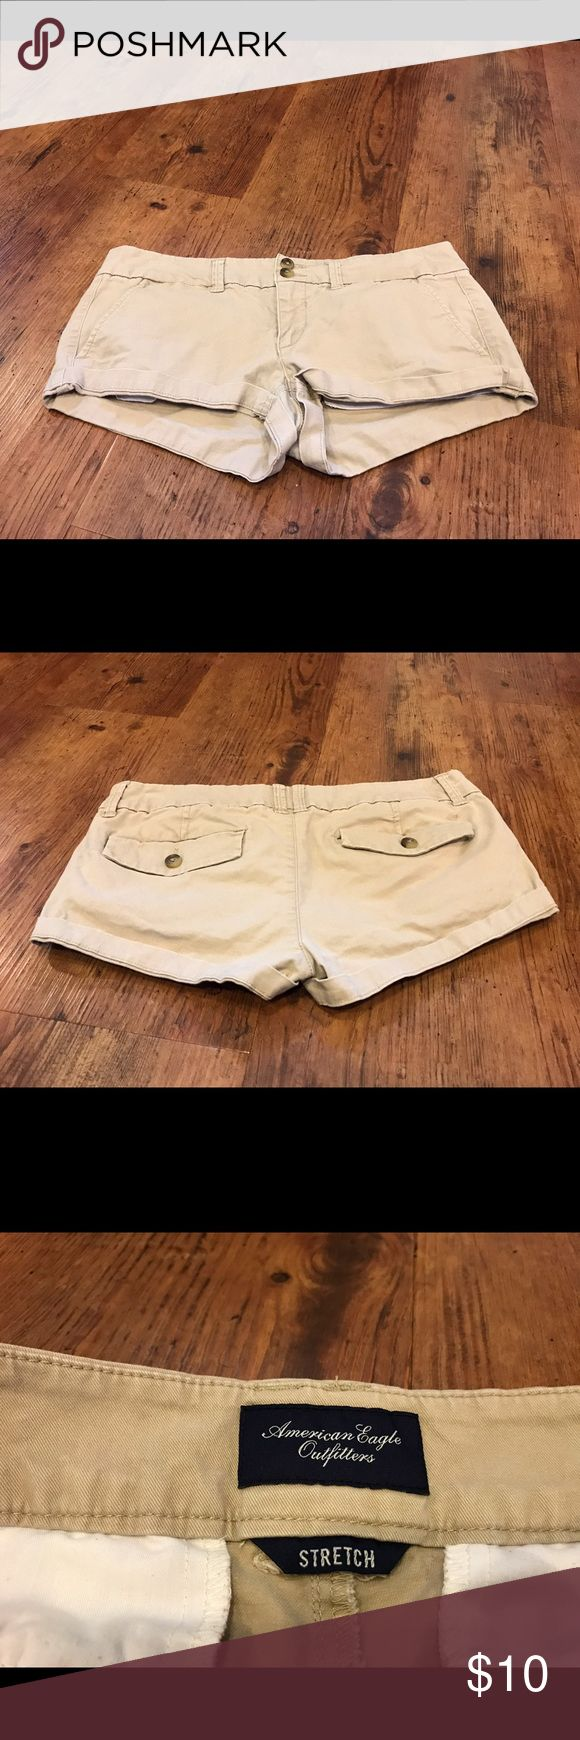 Selling this AE Women's Khaki Shorts on Poshmark! My username is: saracolfer11. #shopmycloset #poshmark #fashion #shopping #style #forsale #American Eagle Outfitters #Pants